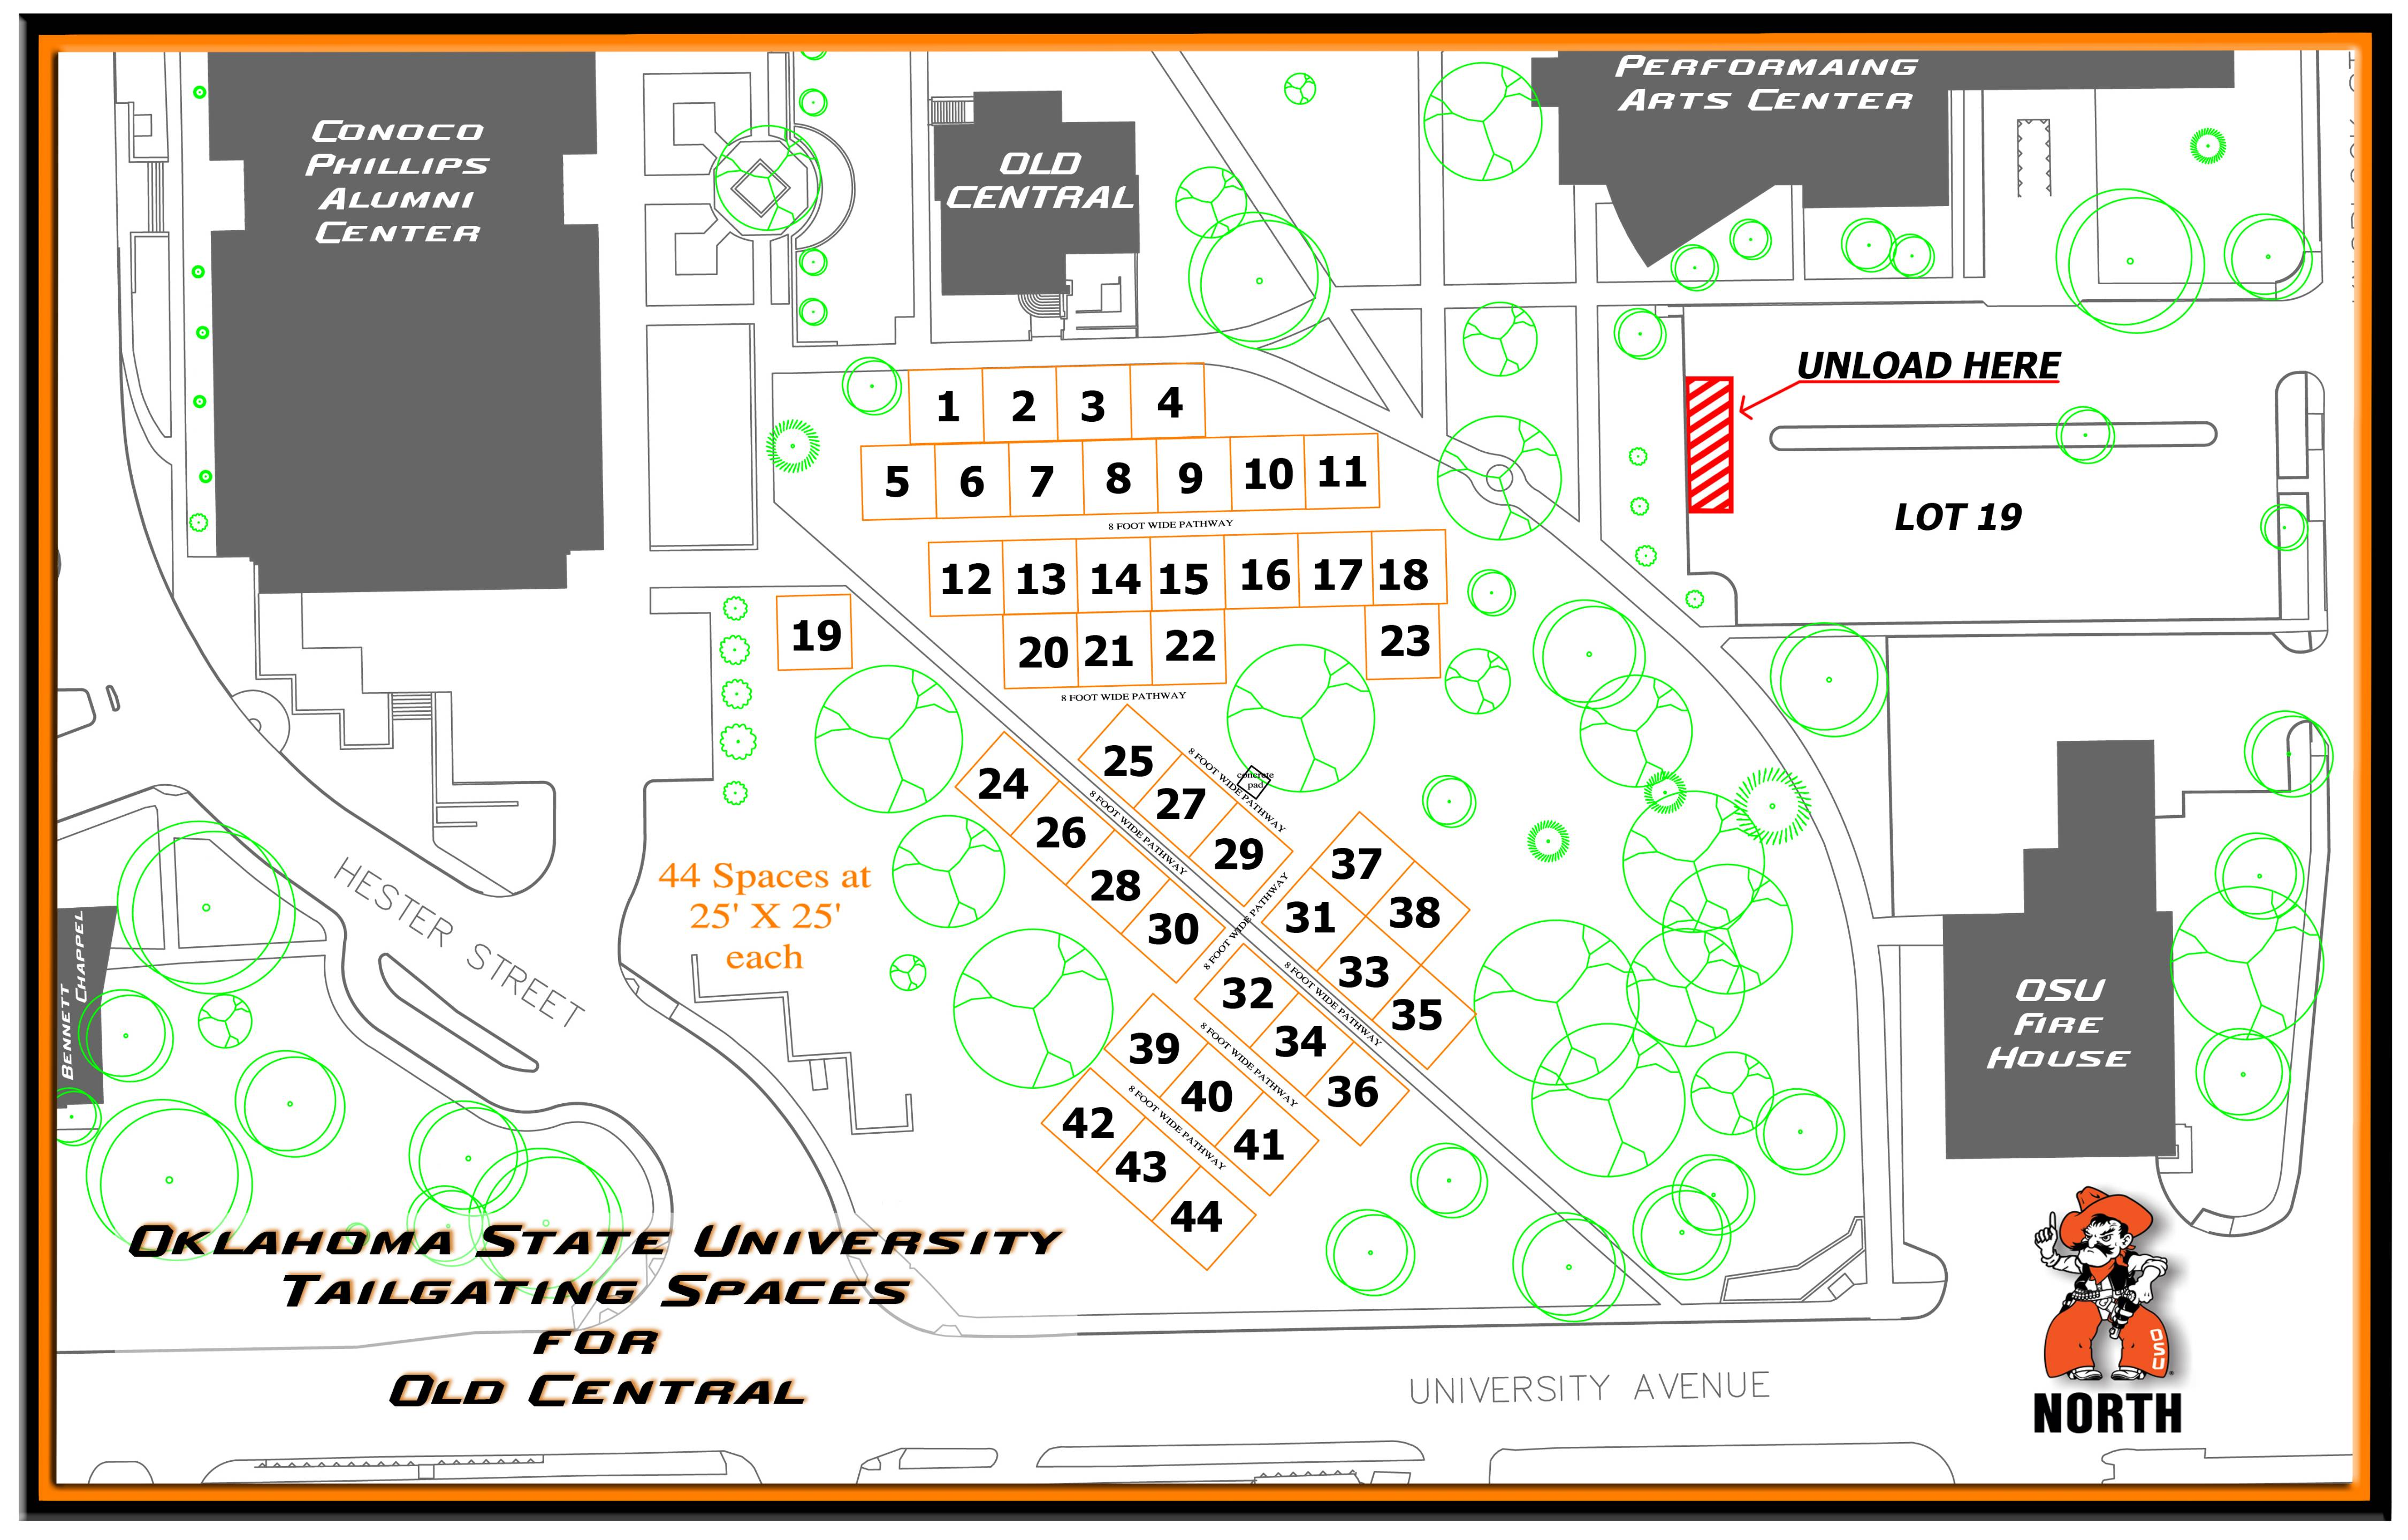 University Of Central Oklahoma Campus Map.Campus Tailgate Meeting Conference Services Oklahoma State